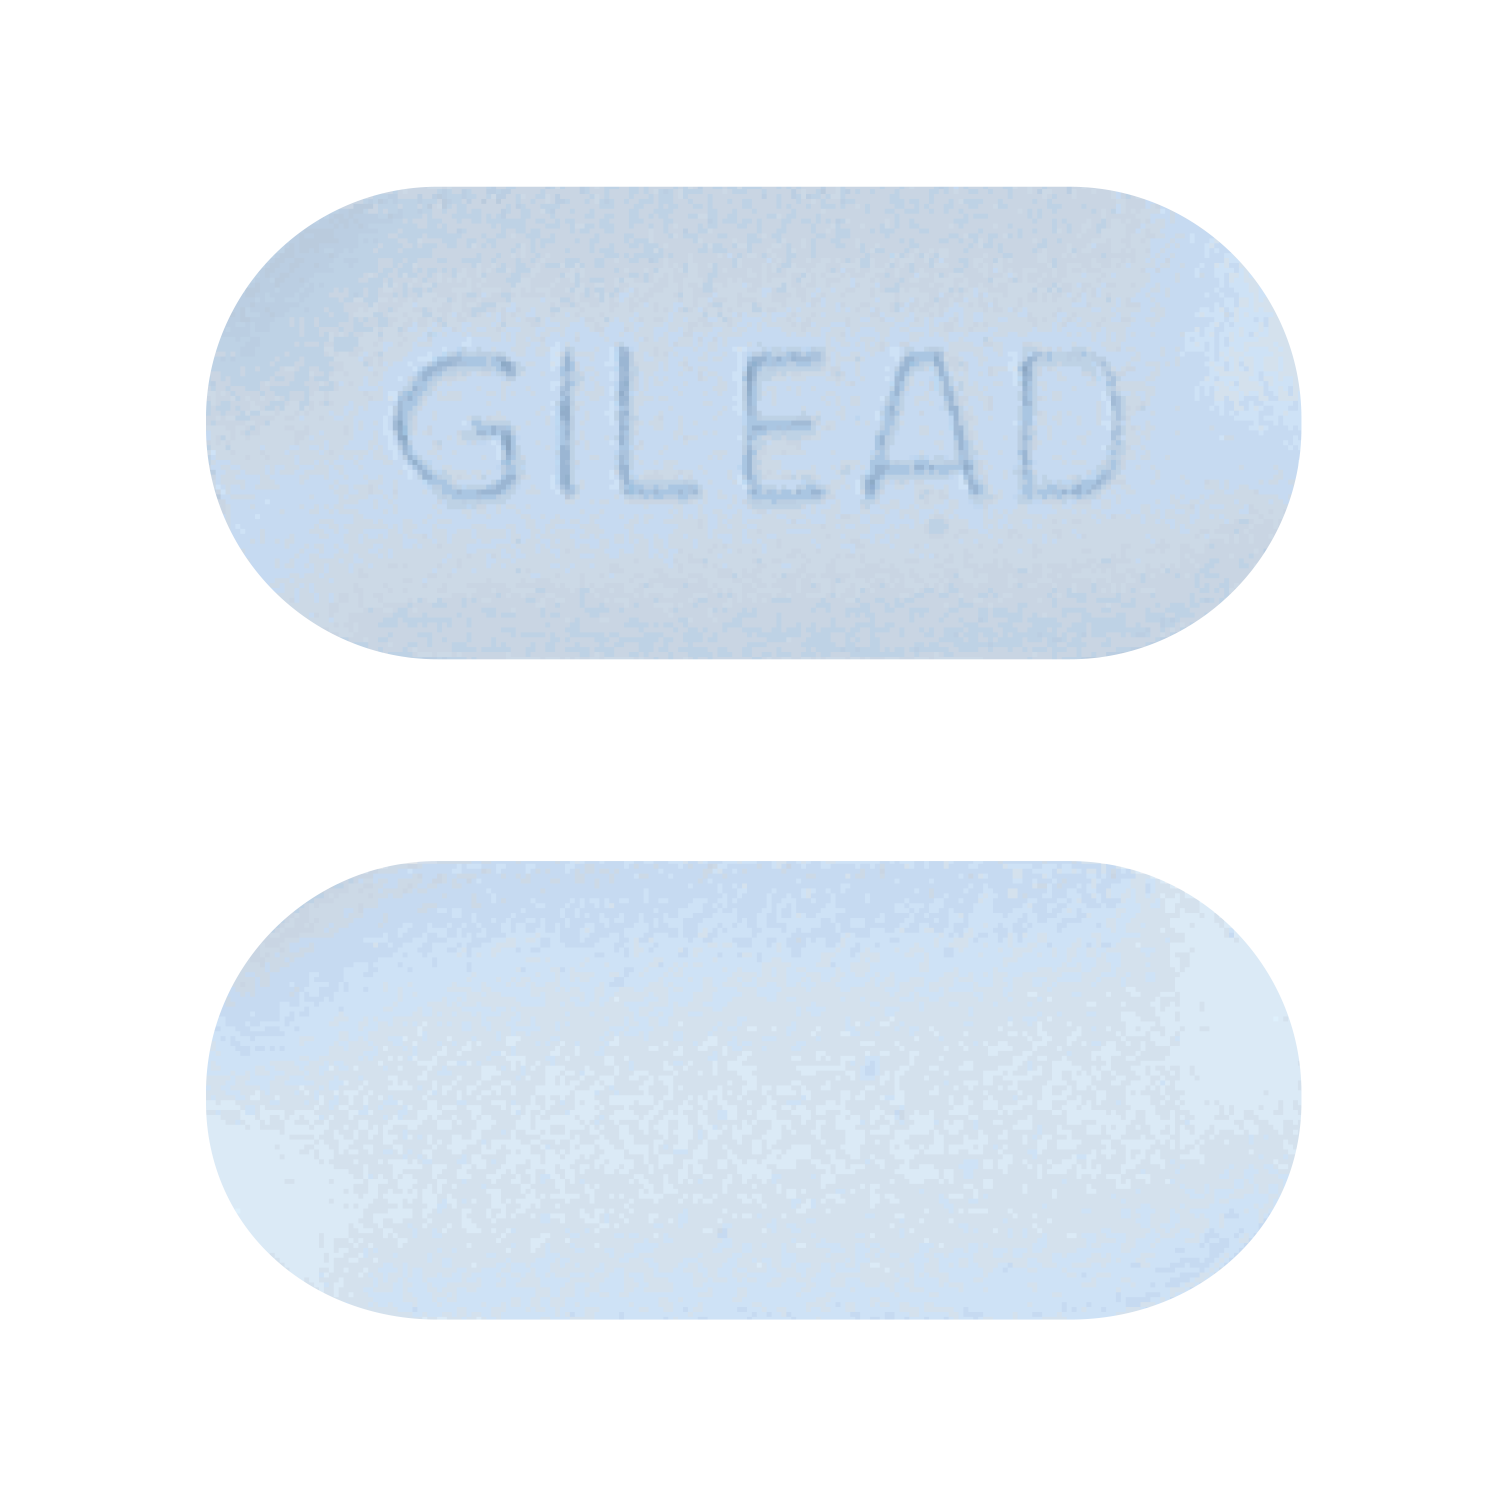 PrEP pill GILEAD 02 Pulse Clinic.png (153 KB)